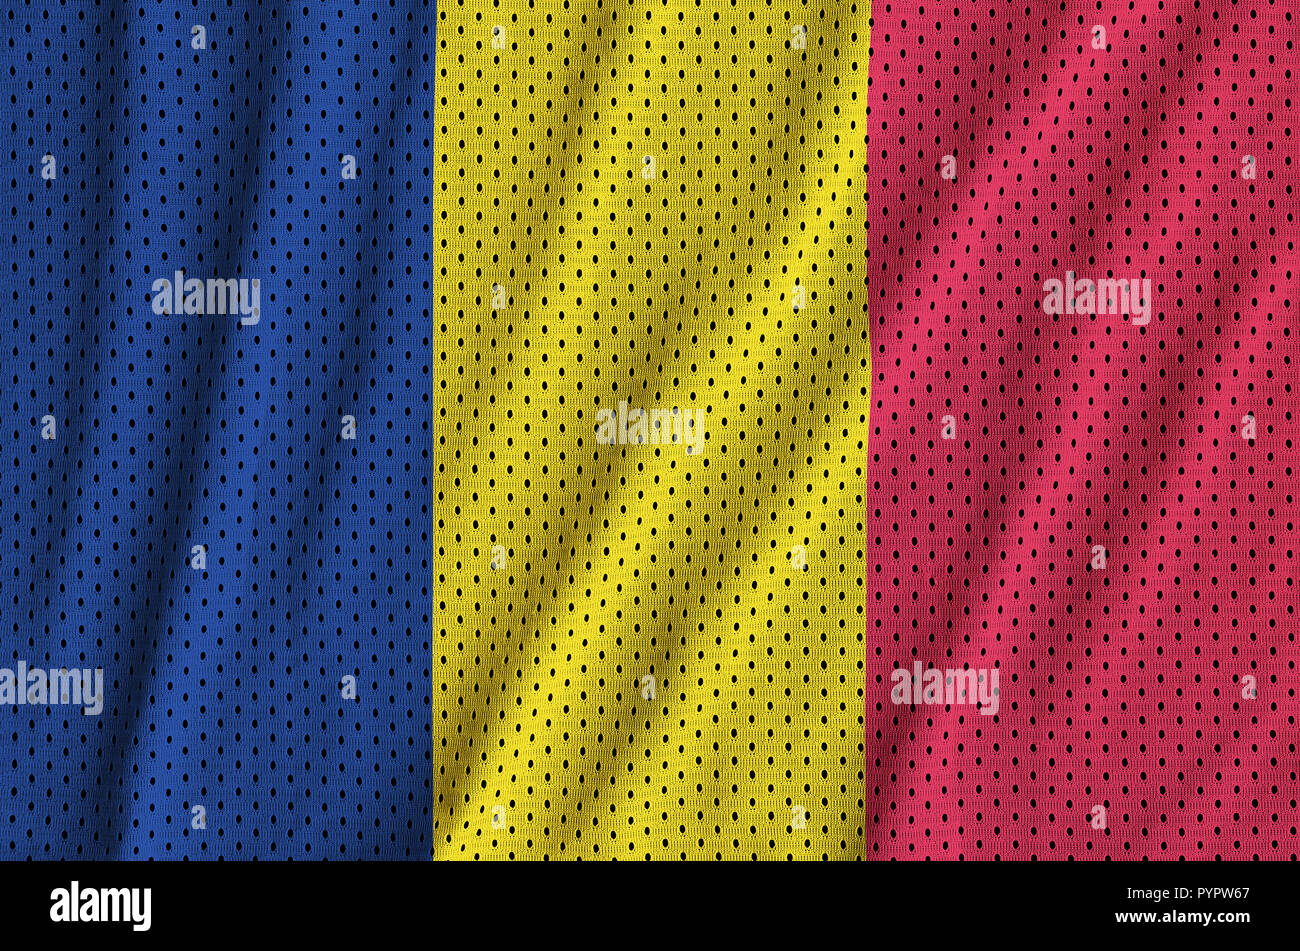 Chad flag printed on a polyester nylon sportswear mesh fabric with some folds - Stock Image